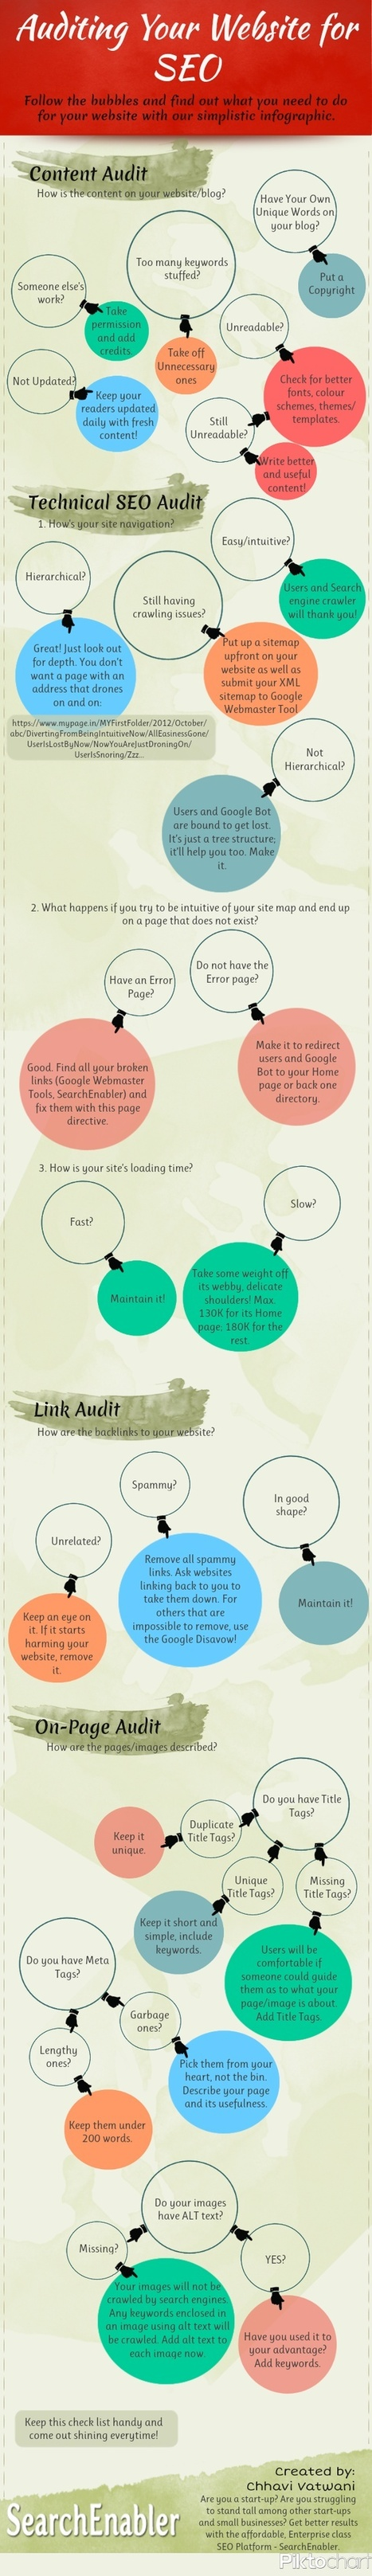 Auditing your website for seo December 2012 infographic | Seo ( Google ranking & seo consultant) | Scoop.it